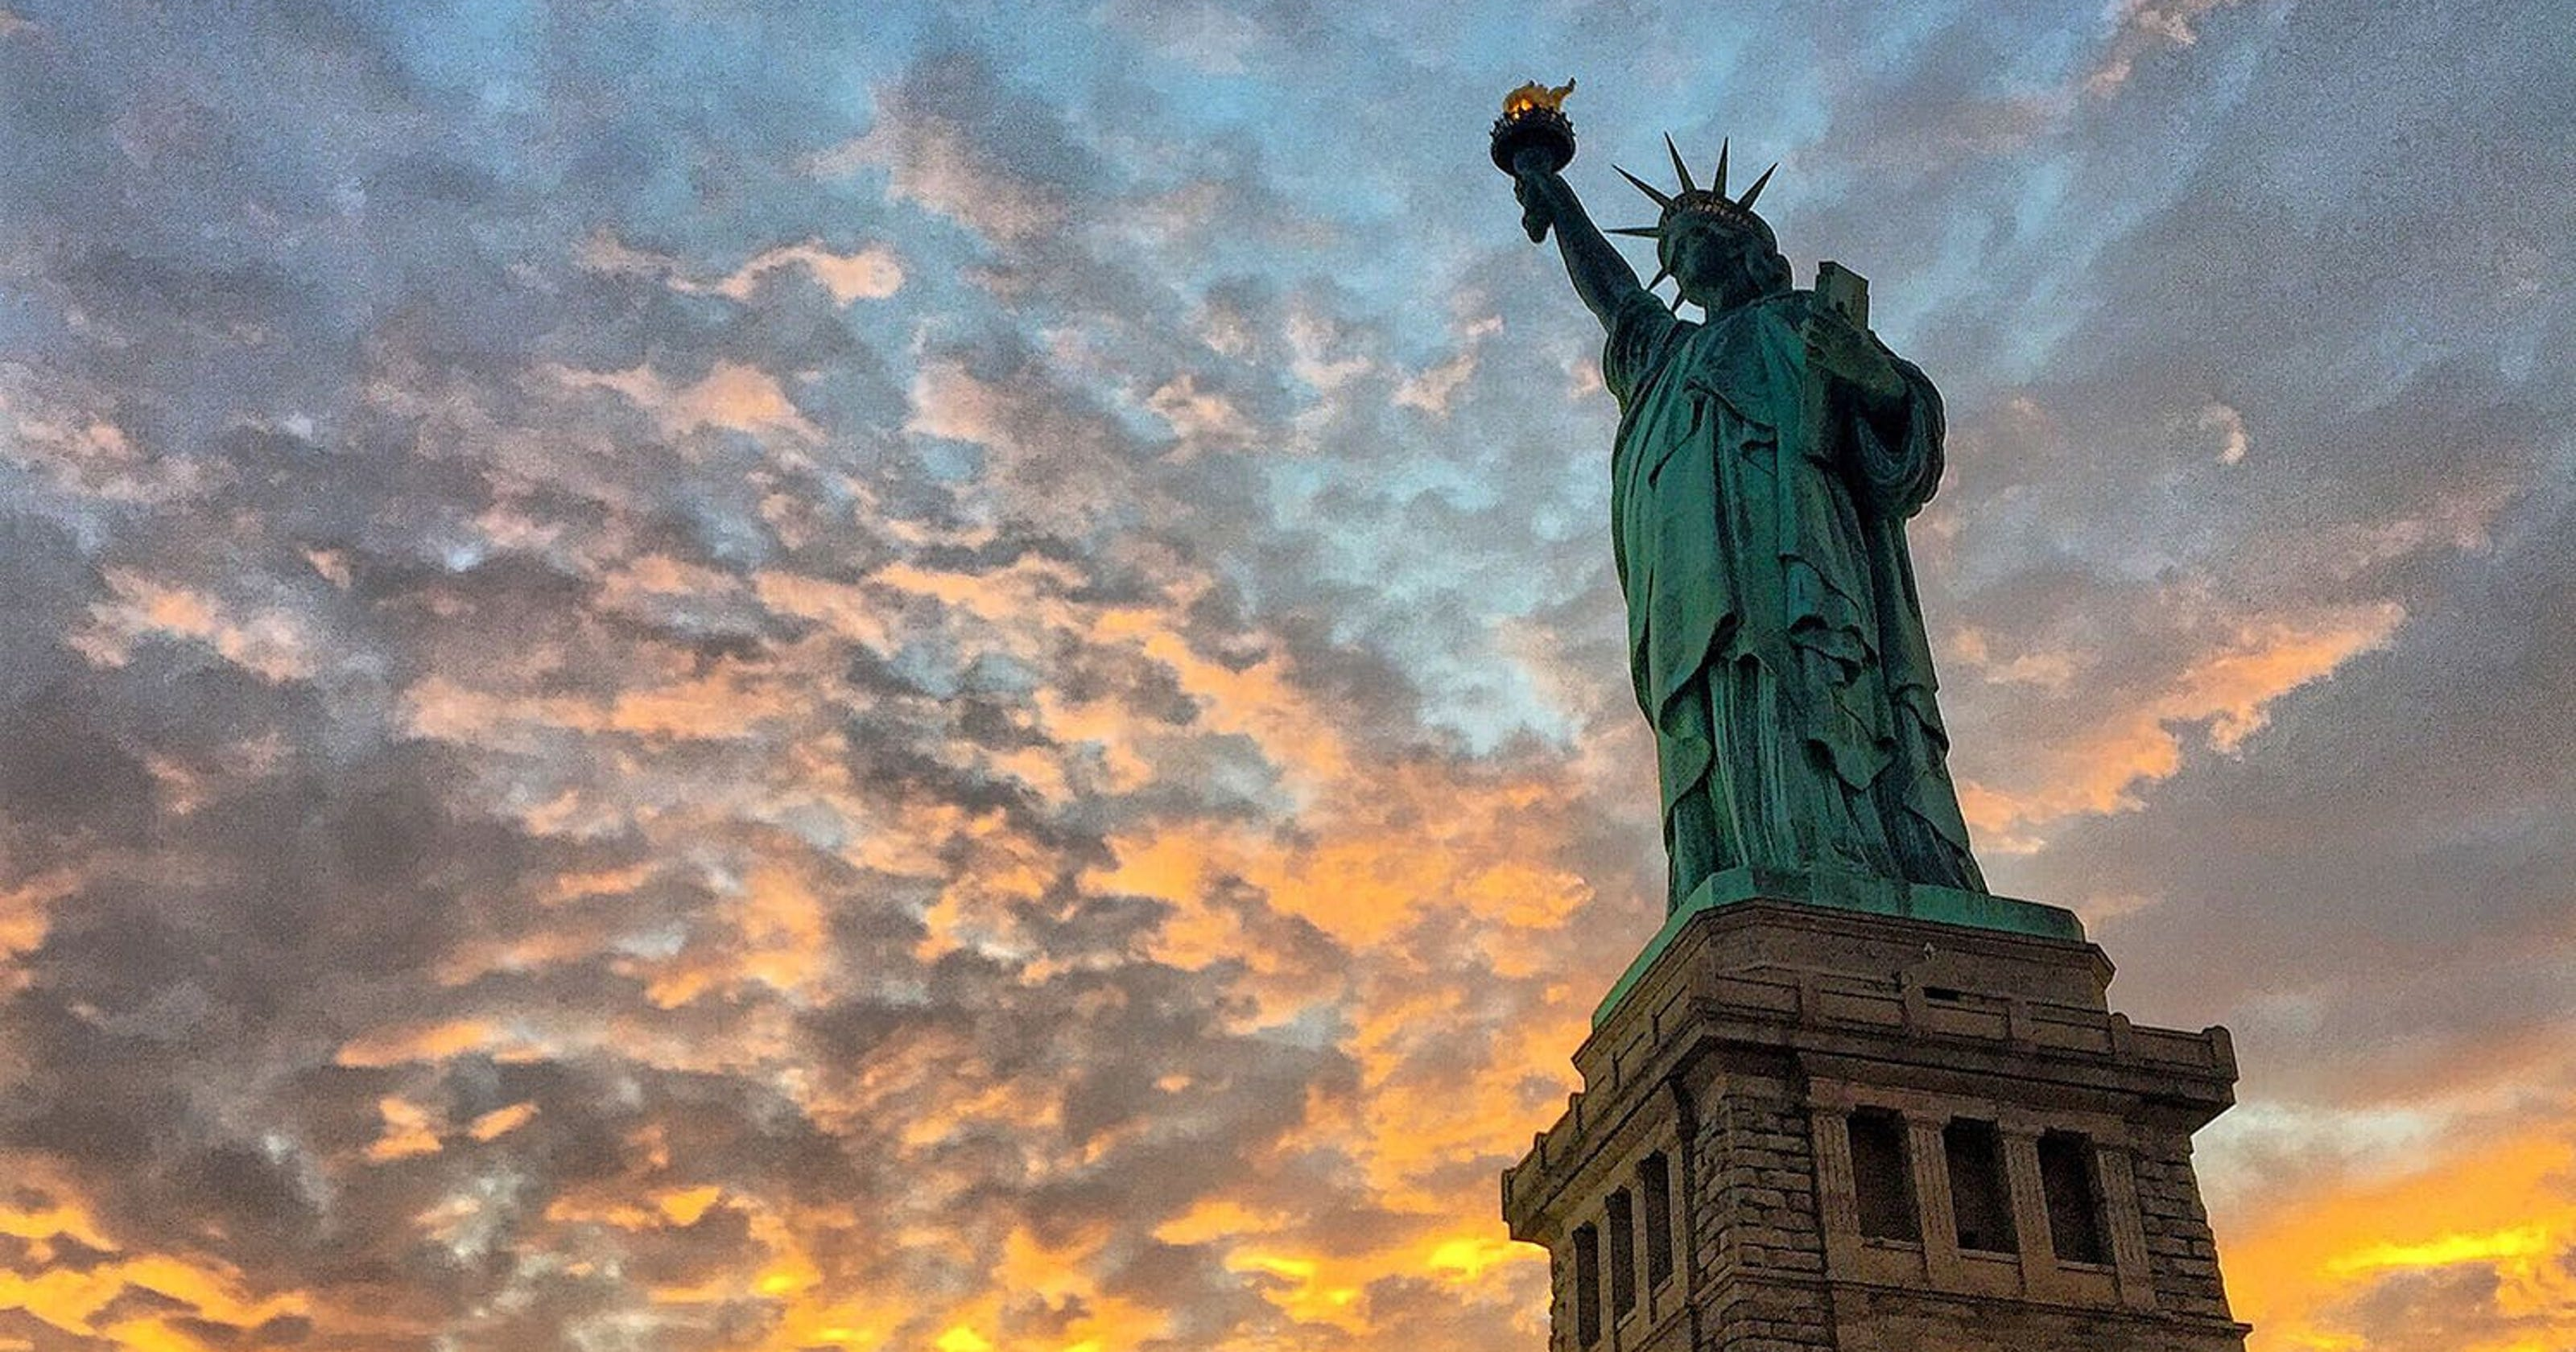 Photos: Statue of Liberty through the years